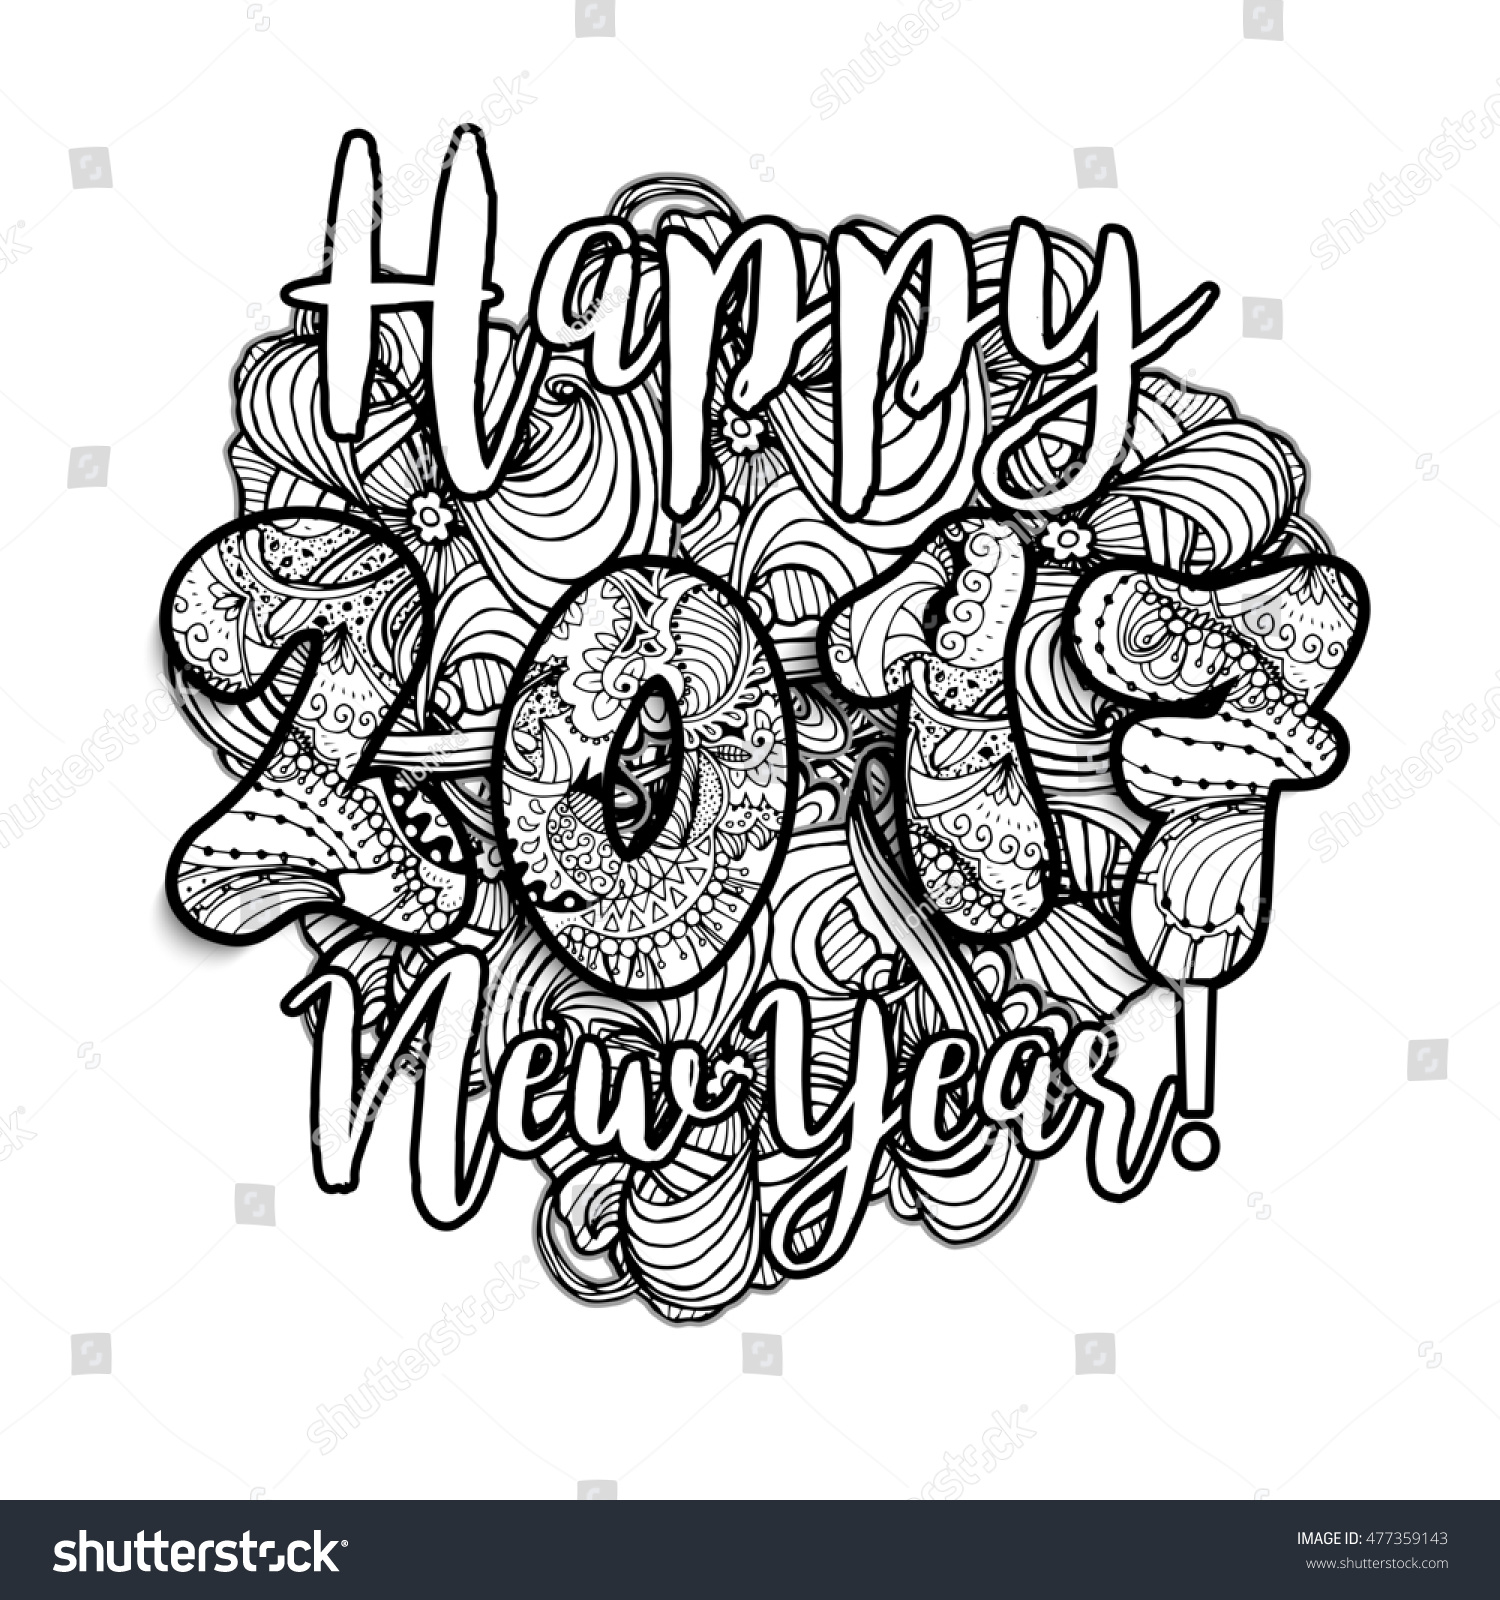 happy new year 2017 hand drawn stock illustration 477359143